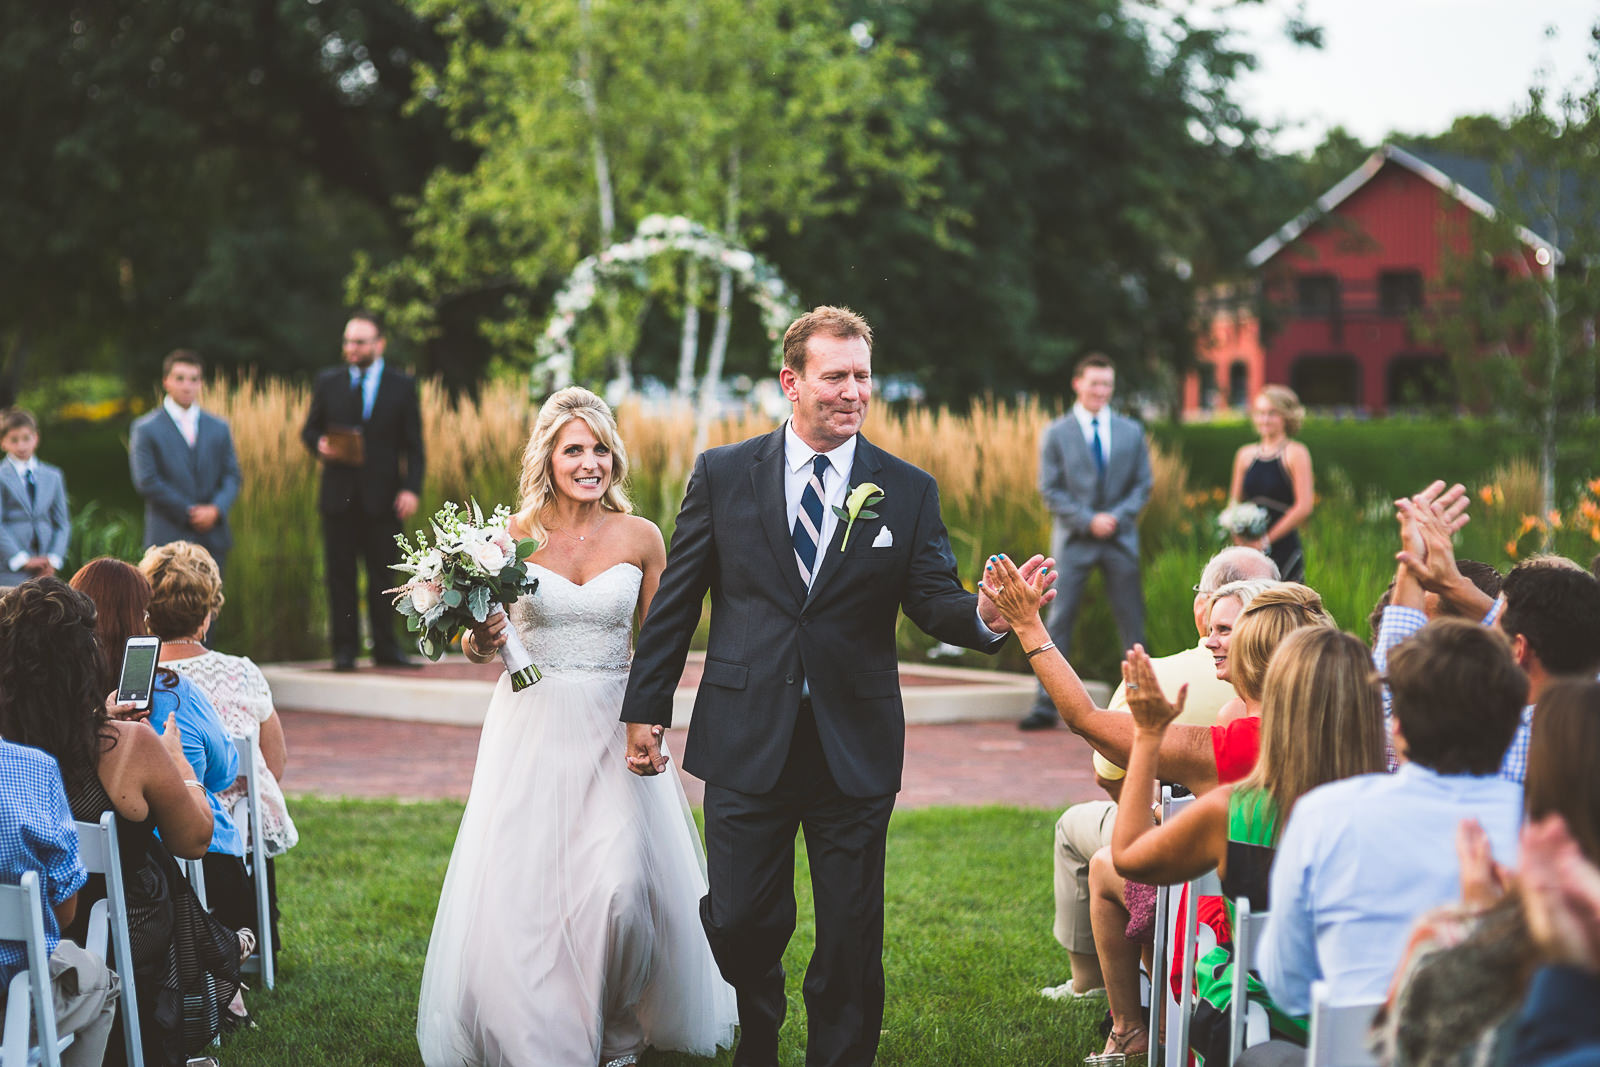 Karen + Scott // Fishermens Inn Wedding Photographer Elburn Illinois